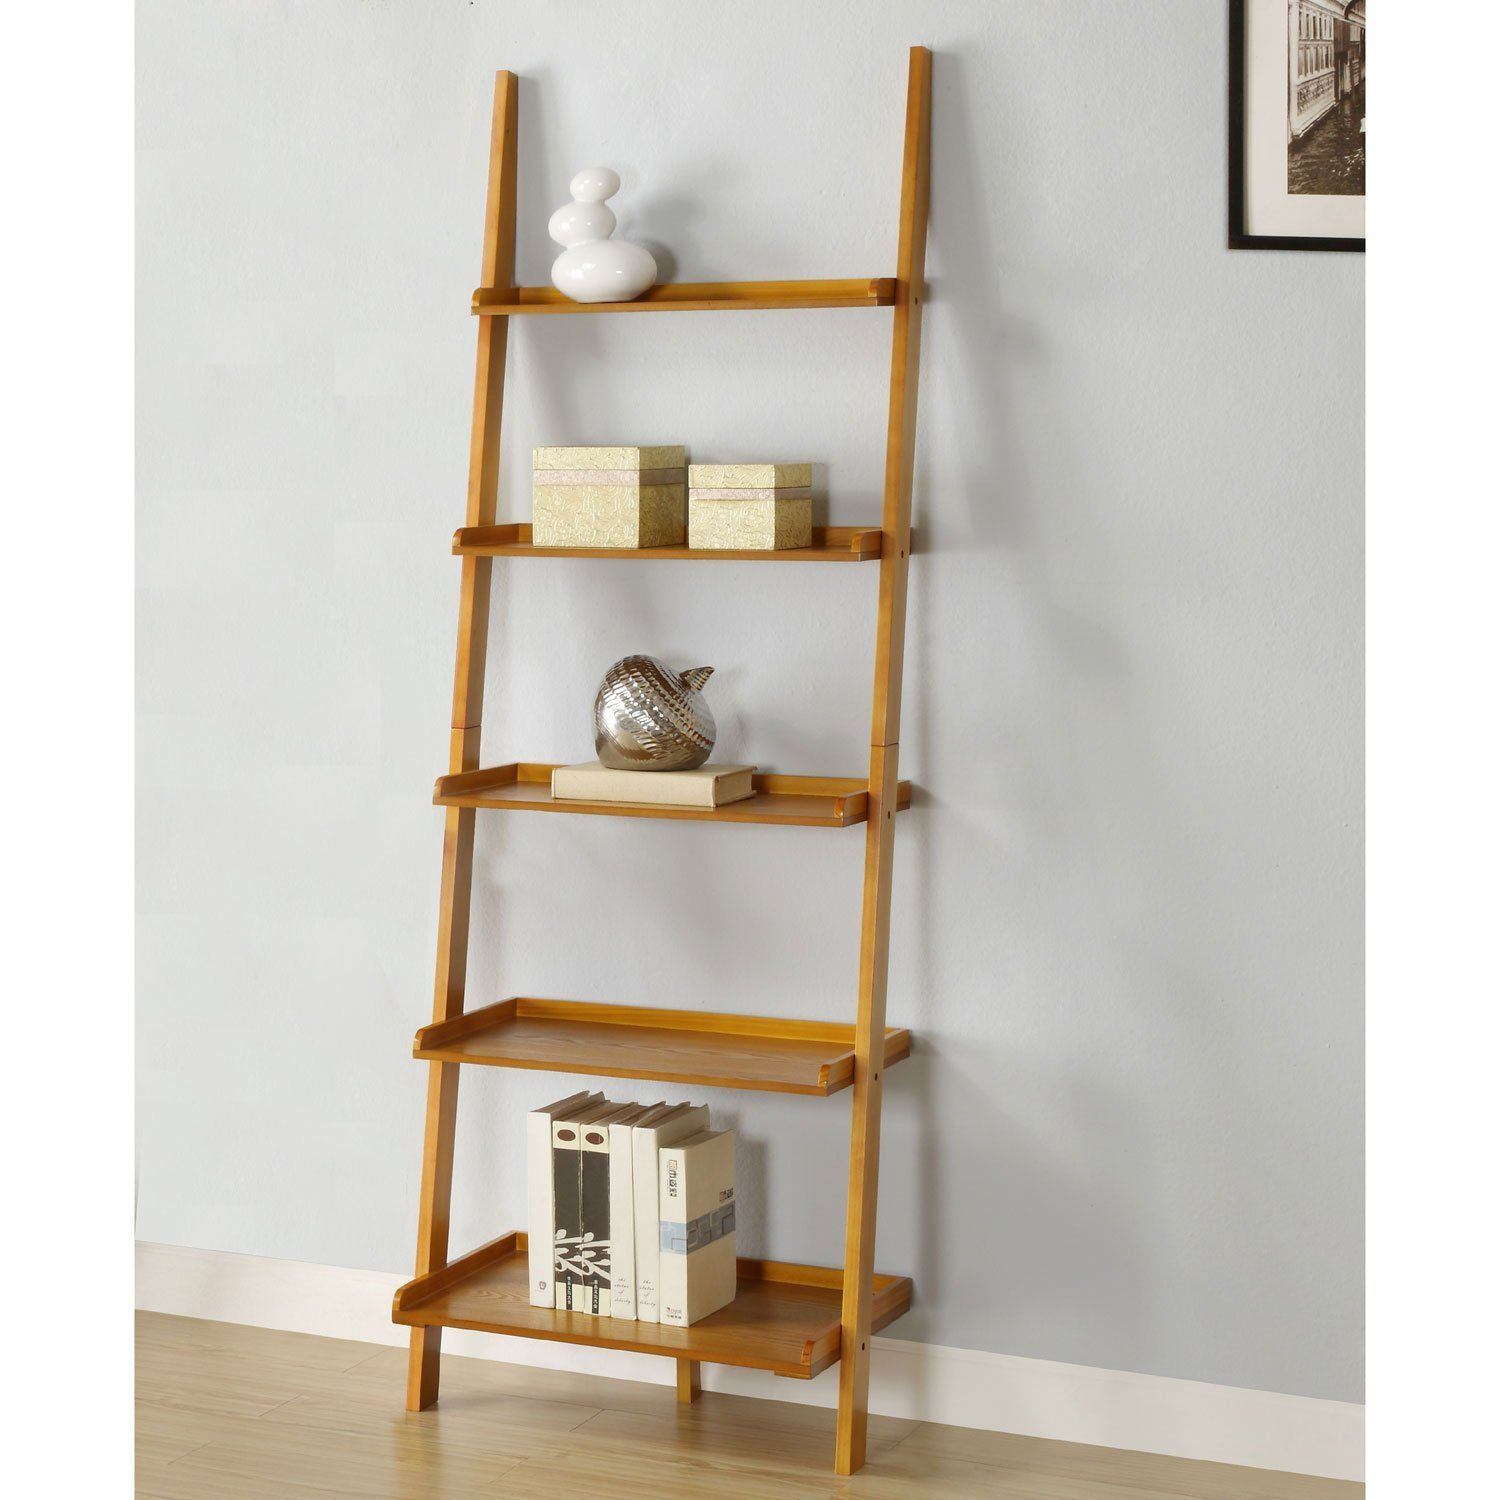 Best 22 Leaning Ladder Bookshelf And Bookcase Collection For Your Home Office Ladder Bookcase Leaning Bookcase Bookcase